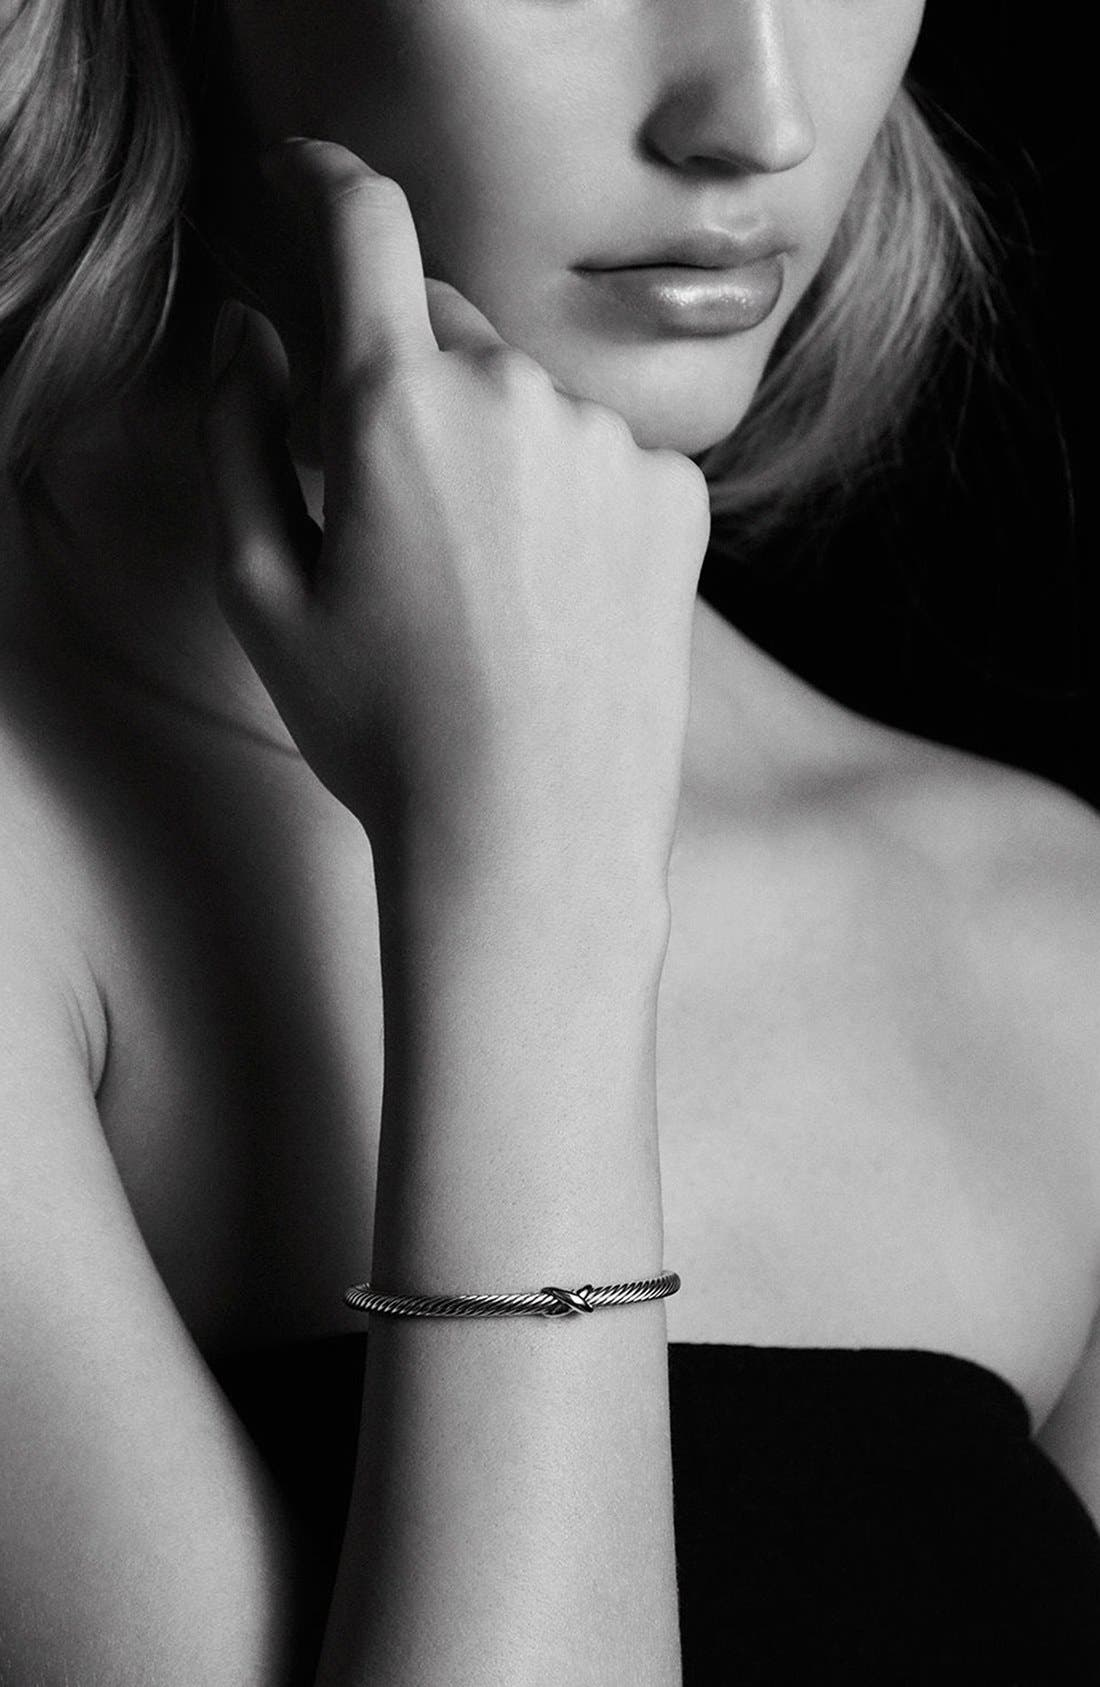 Alternate Image 3  - David Yurman 'X' Bracelet with Gold